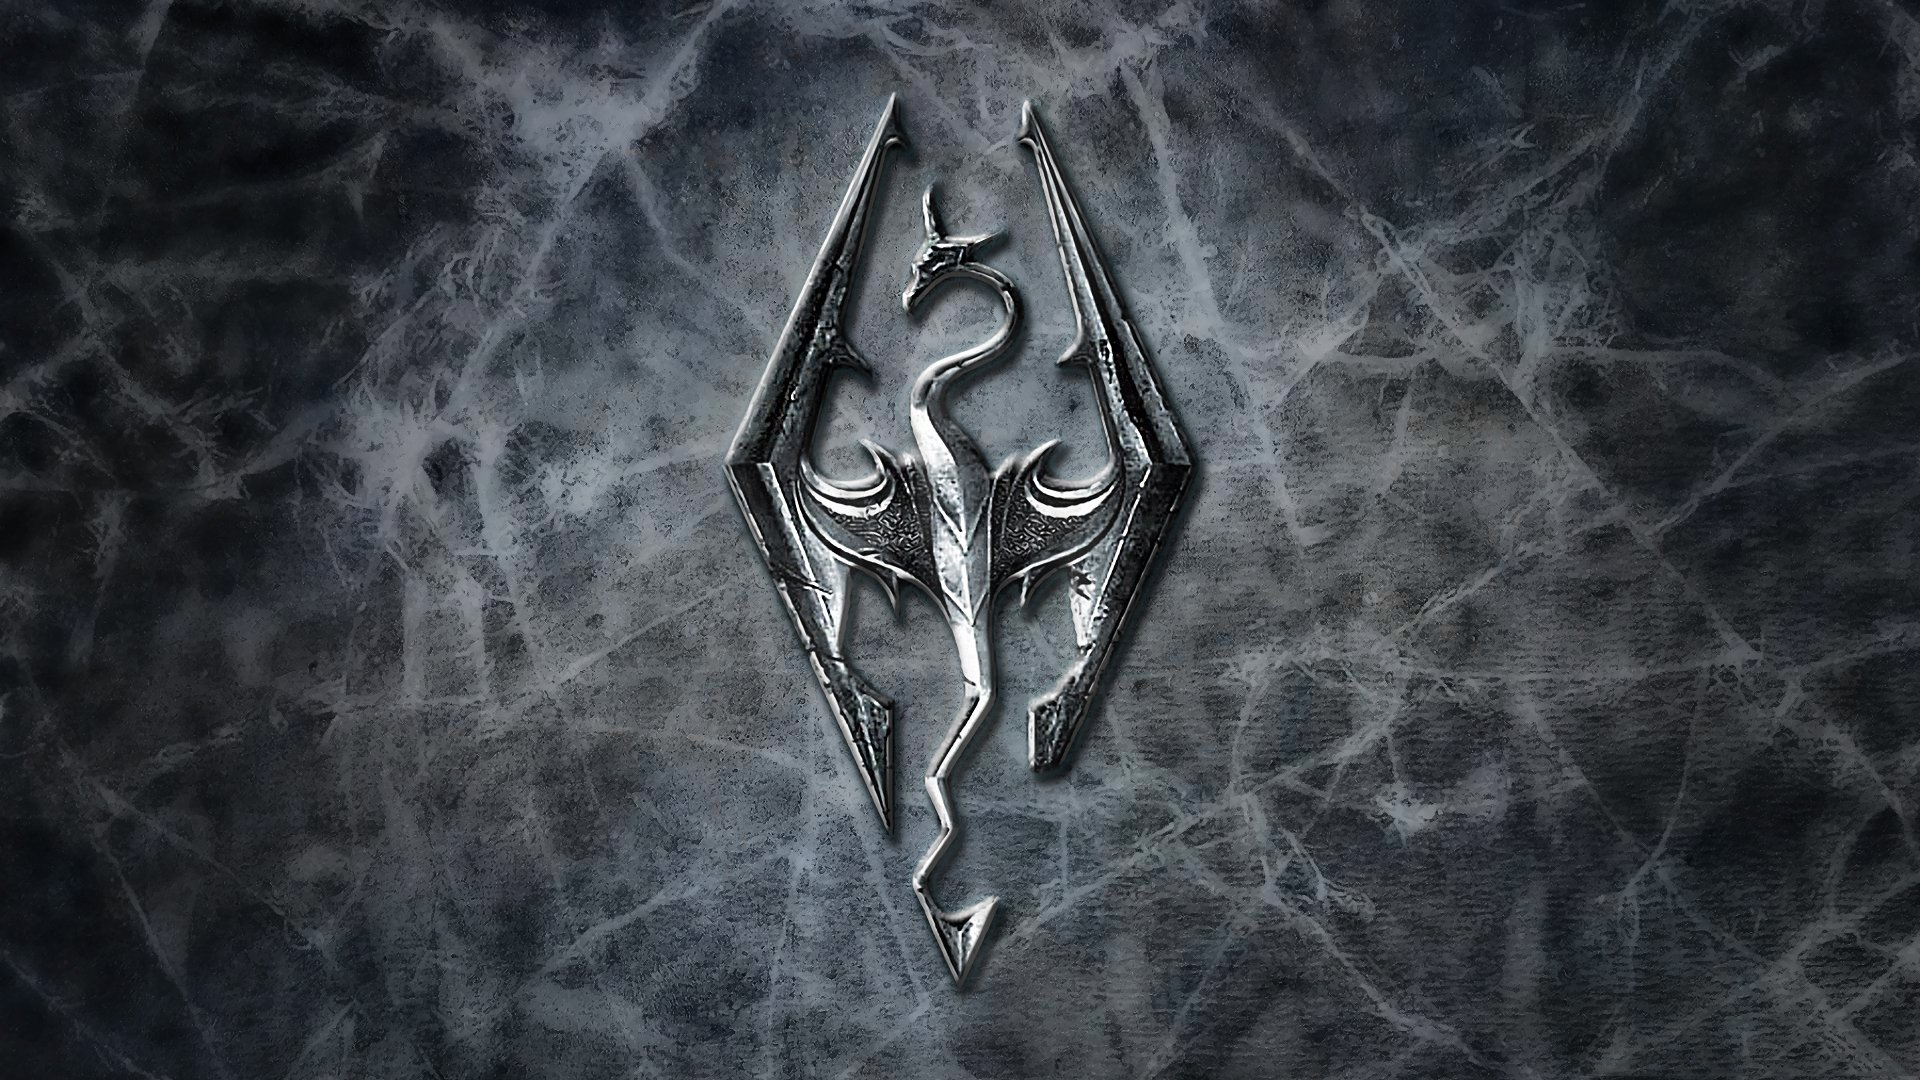 the elder scrolls v bethesda softworks skyrim ролевая игра